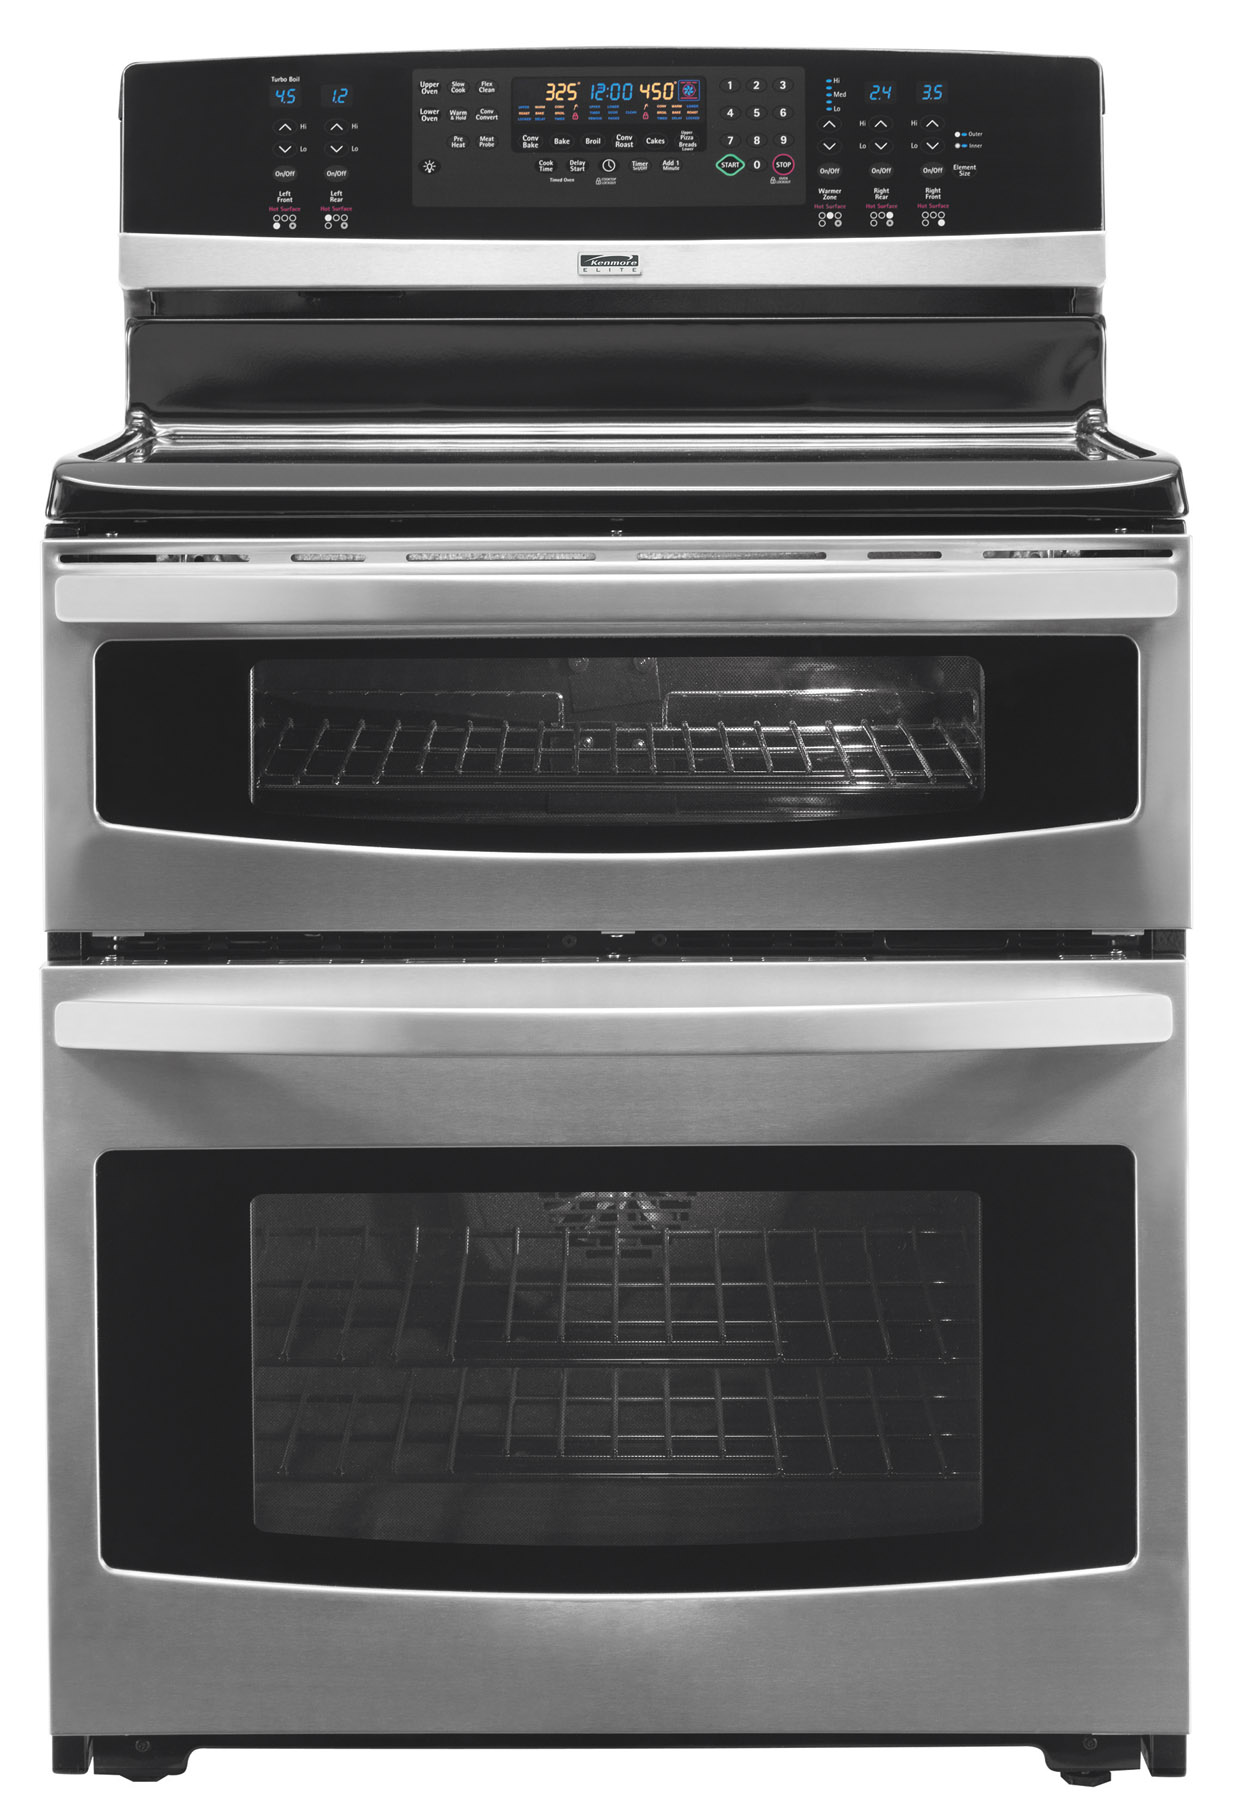 Kenmore Range Stove Oven Model 790 98023800 Parts